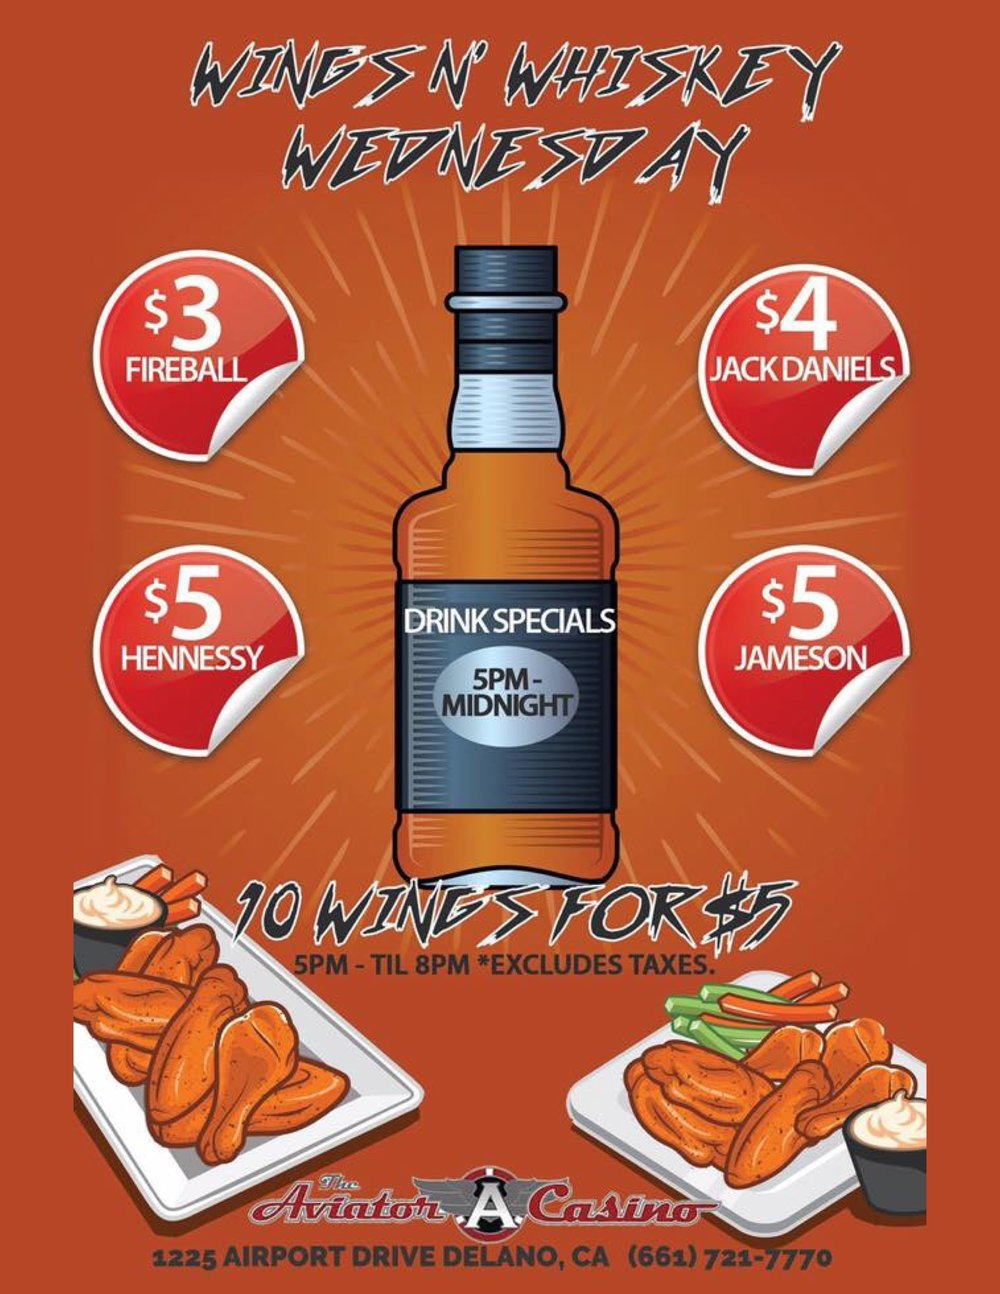 Wednesday 5-12AM - From 5 to 8 PM, get 10 wings for $5! Then from 5 to midnight, it's $3 whiskey, $4 Jack Daniels, $5 Jameson, and $5 Hennessy (price excludes taxes)